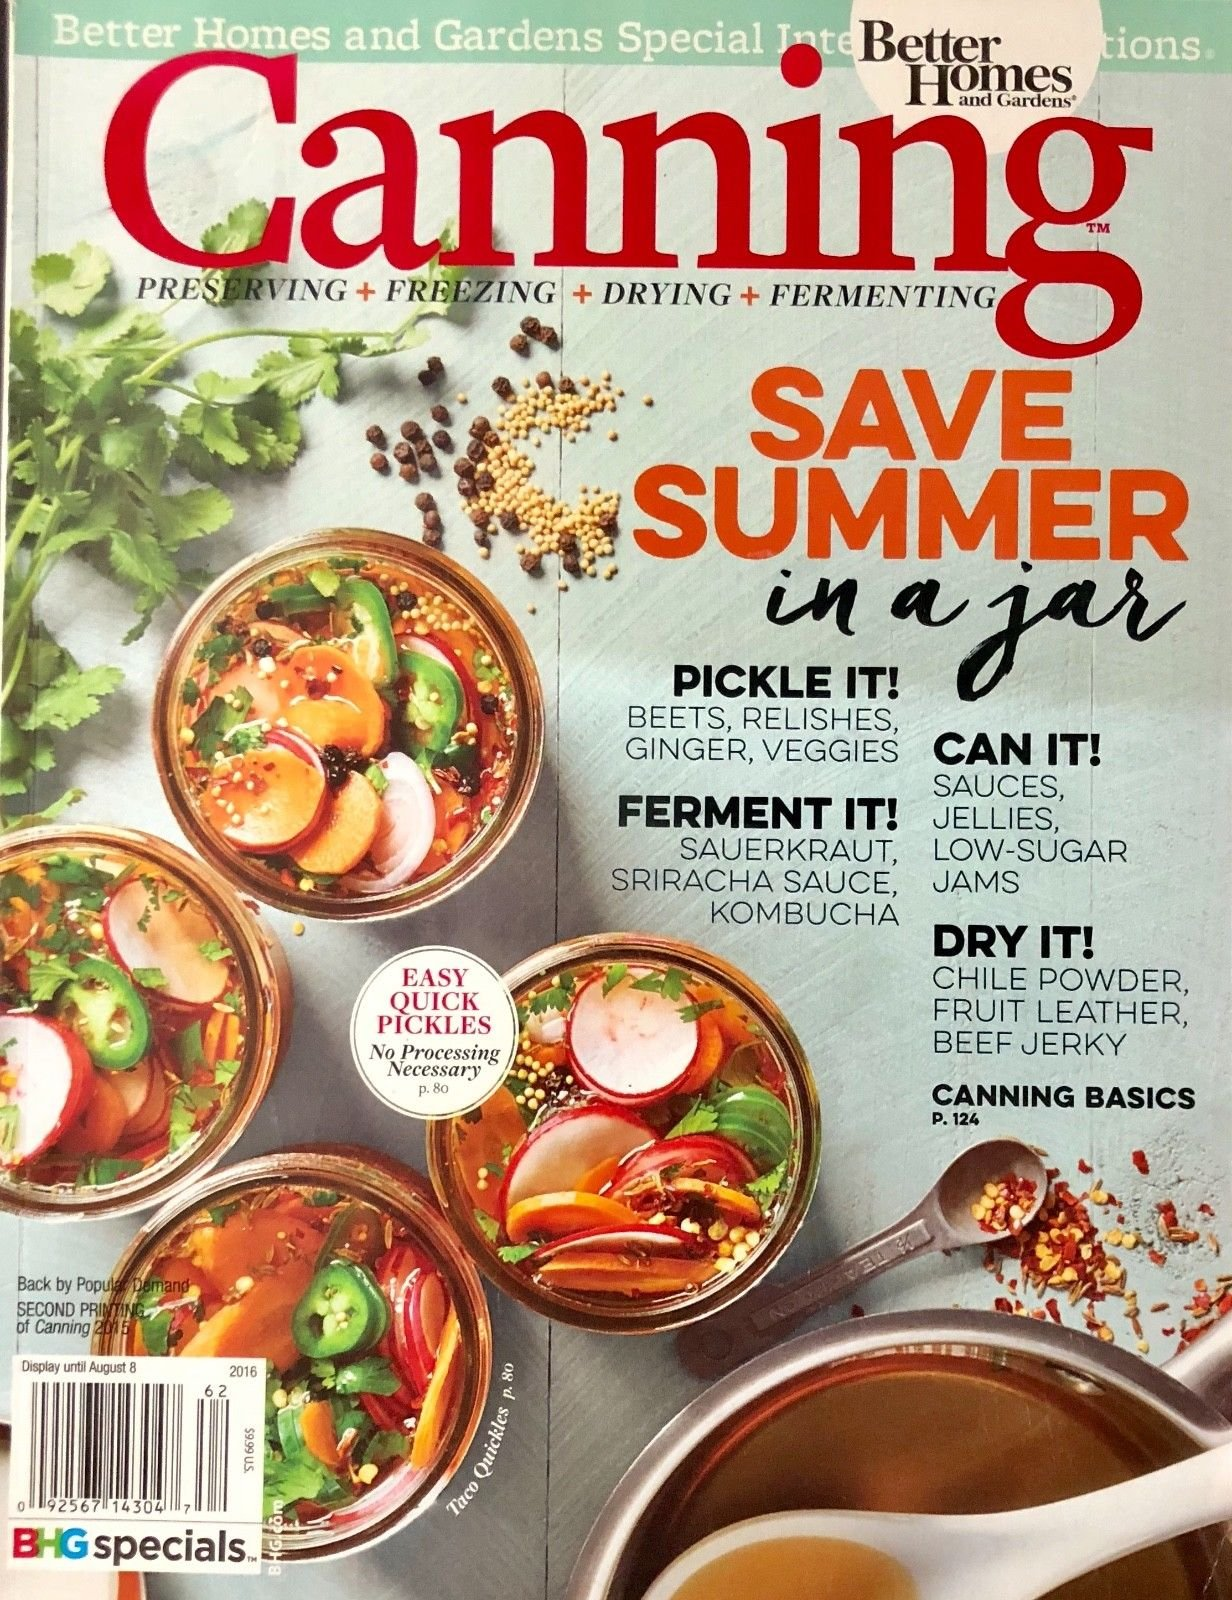 BETTER HOMES & GARDEN SPECIAL INTEREST, CANNING 2016 ISSUE